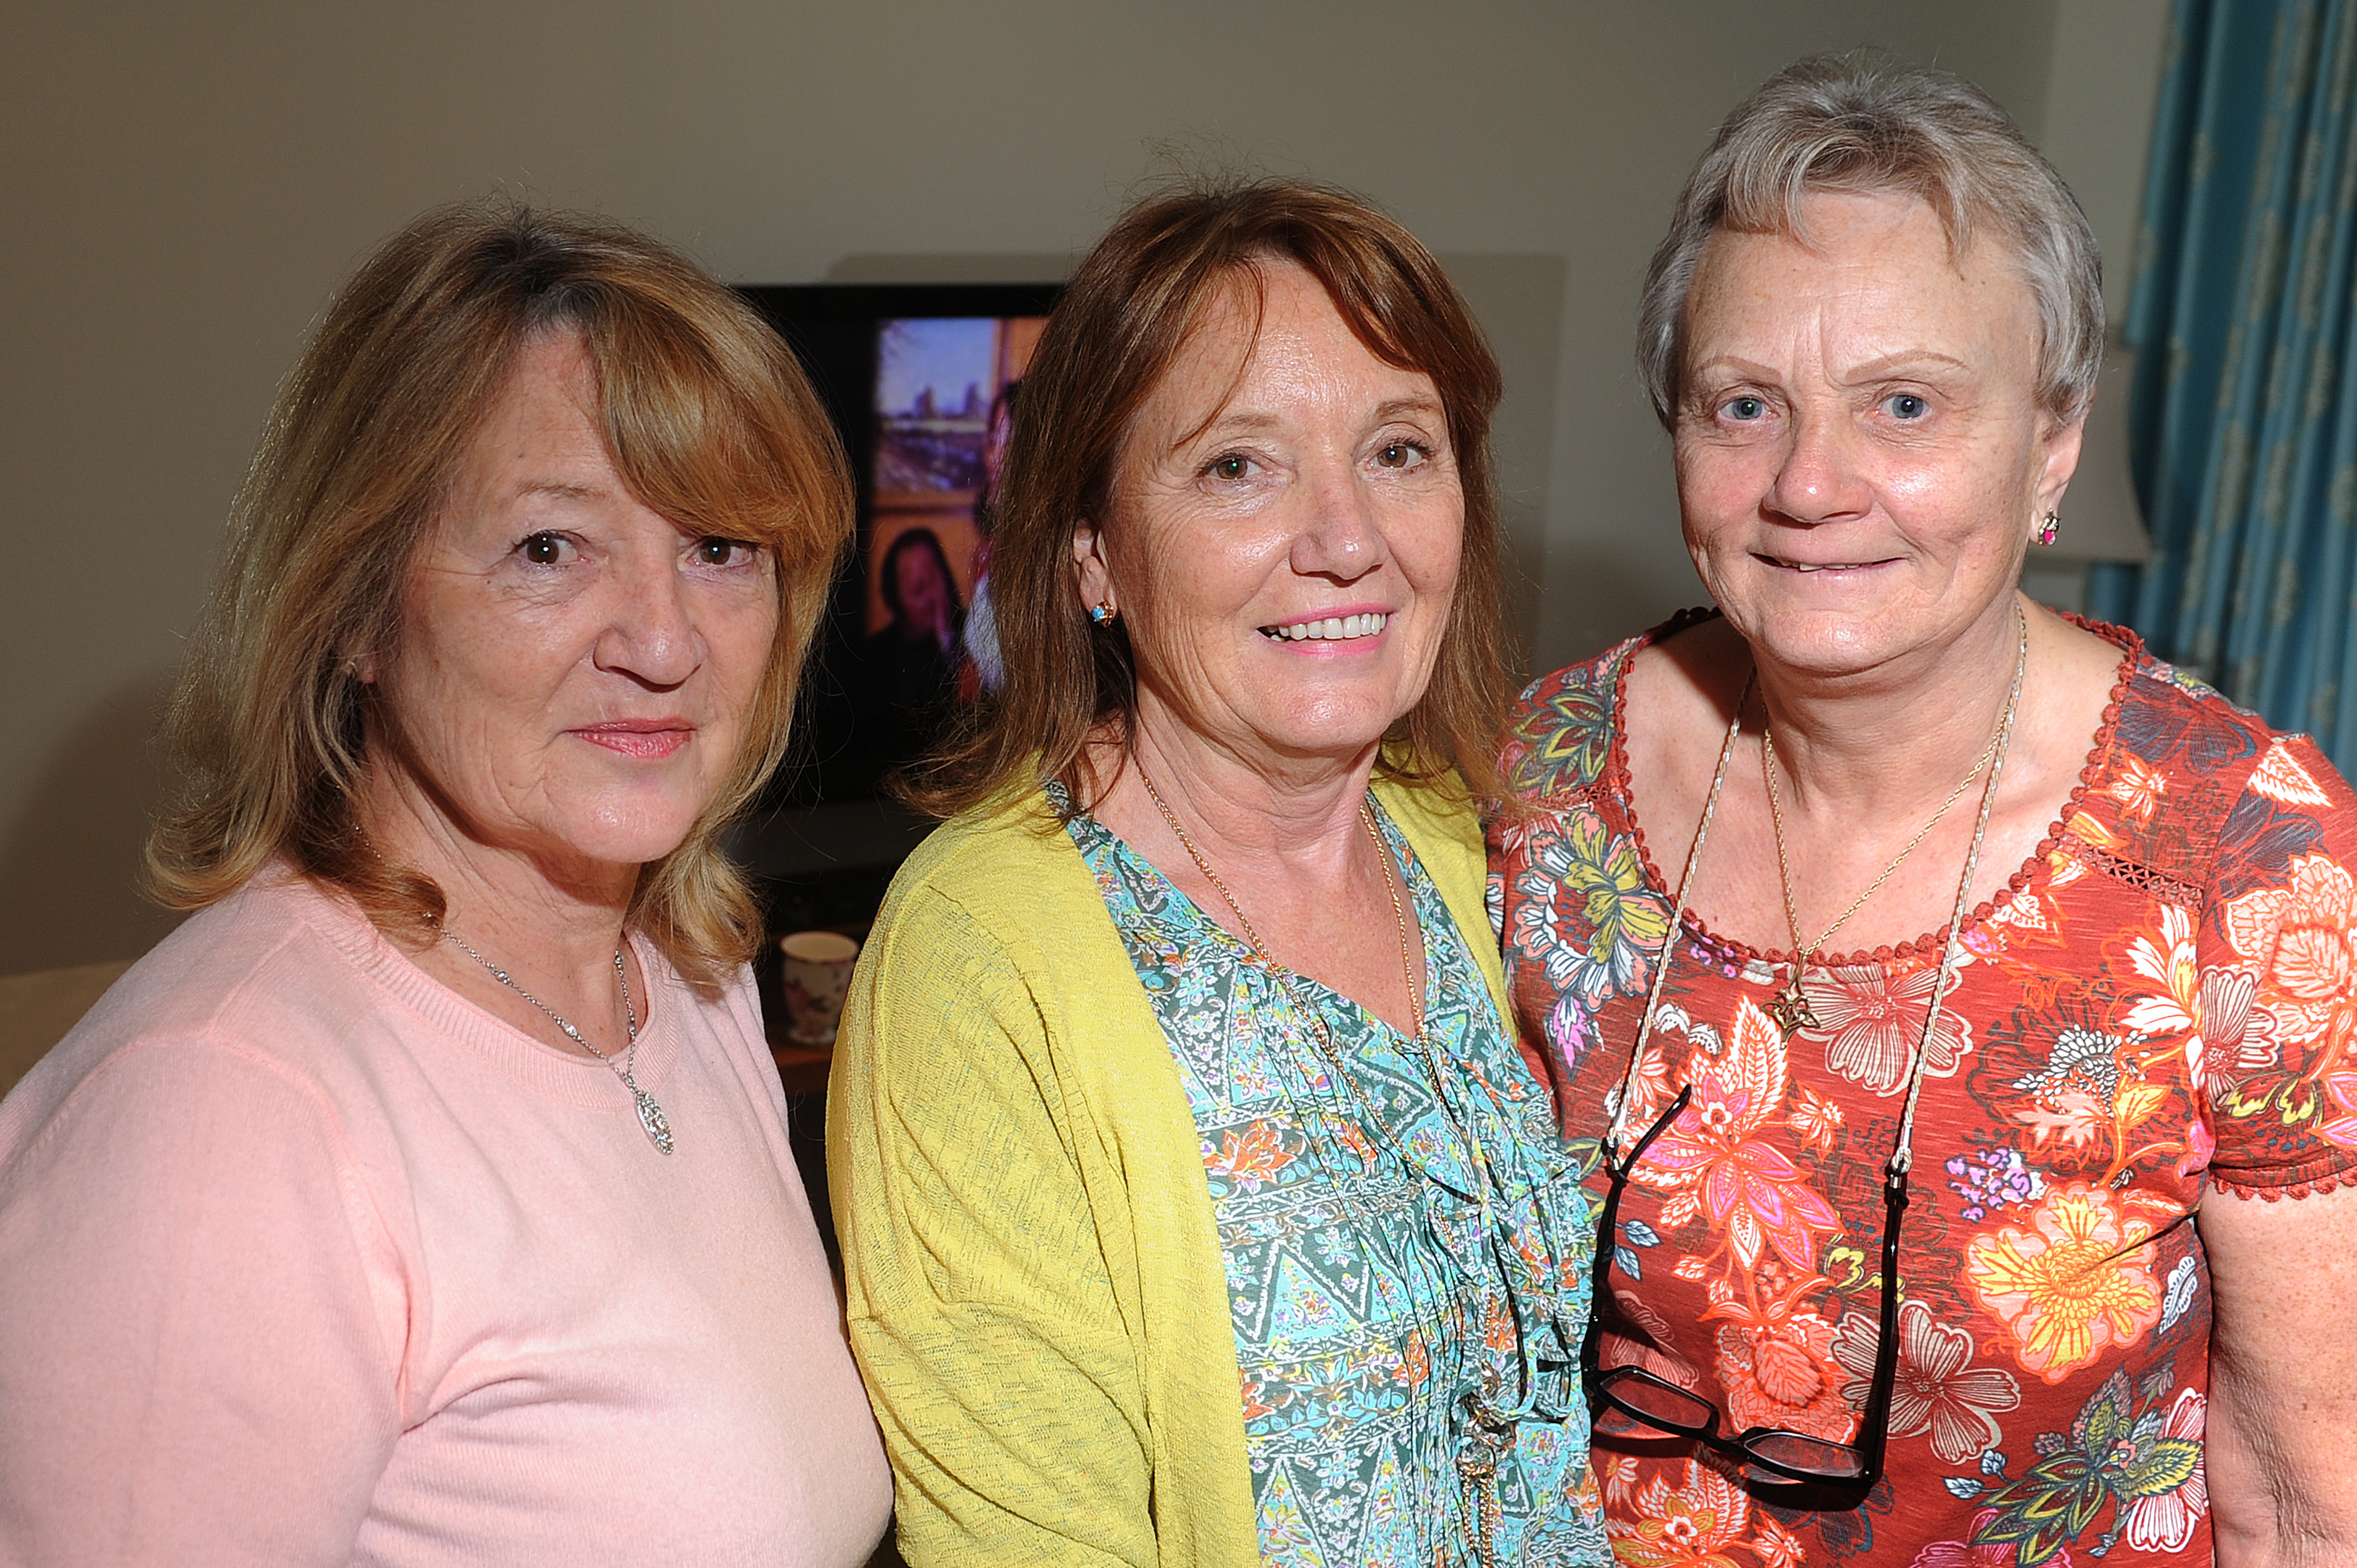 Maureen Brunton, her sister Johan Cowan and cousin Lydia Gorman who were all in the original film.